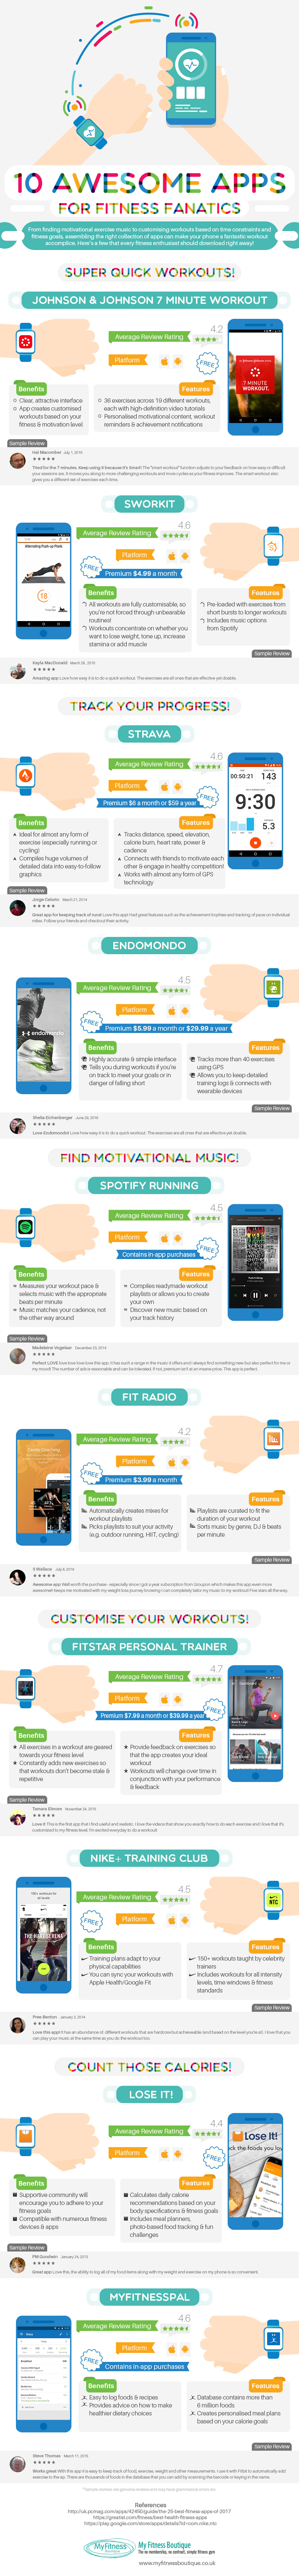 10-Awesome-Apps-for-Fitness-Fanatics